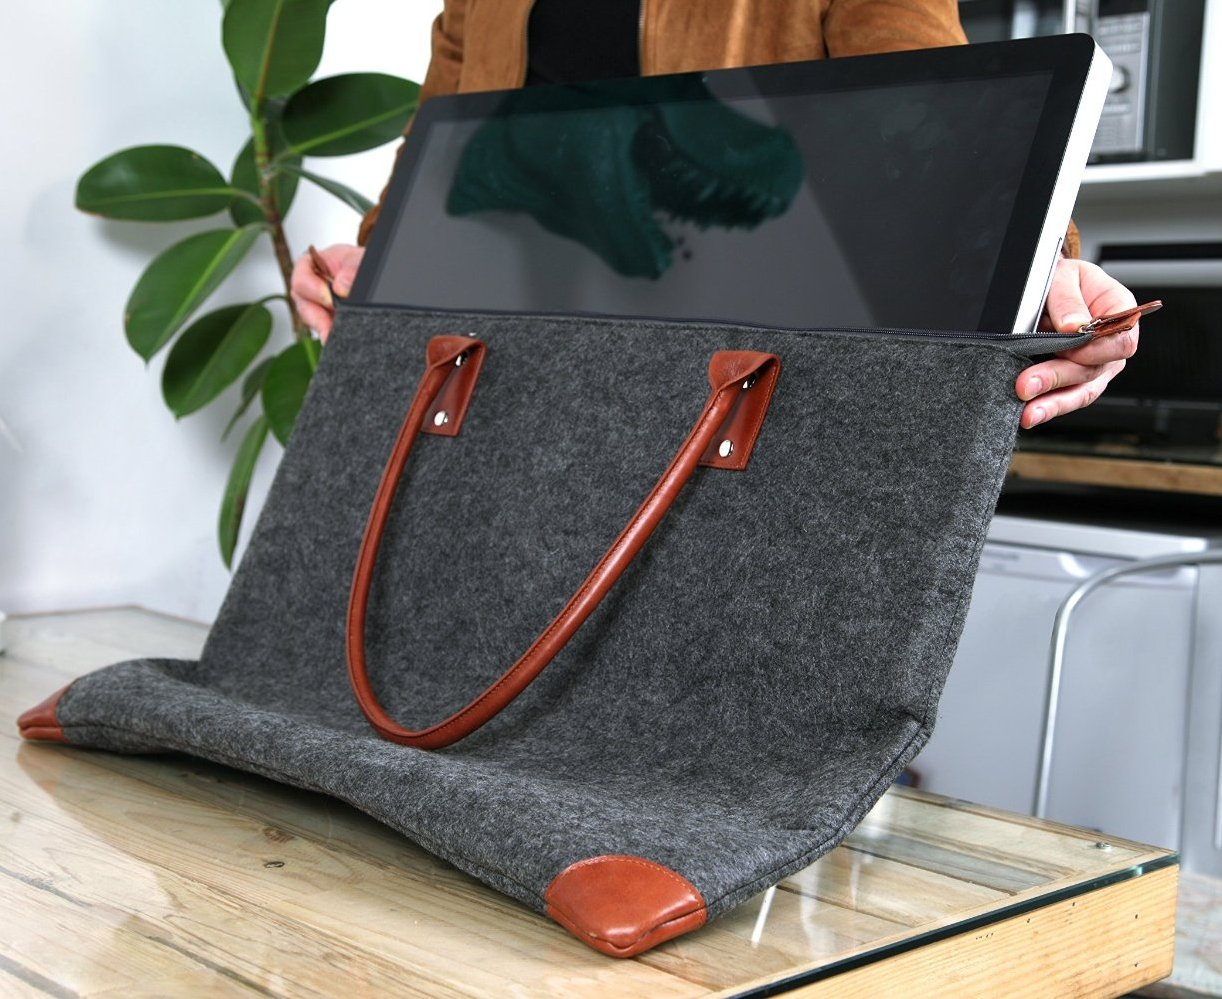 Lavolta Carrying Case Bag for Apple iMac 27-inch - Handmade Genuine Leather and Wool Felt - fits iMac 27'' Retina 5K & 27'' Thunderbolt Display - with Protective Lining & Pockets for iMac Accessories